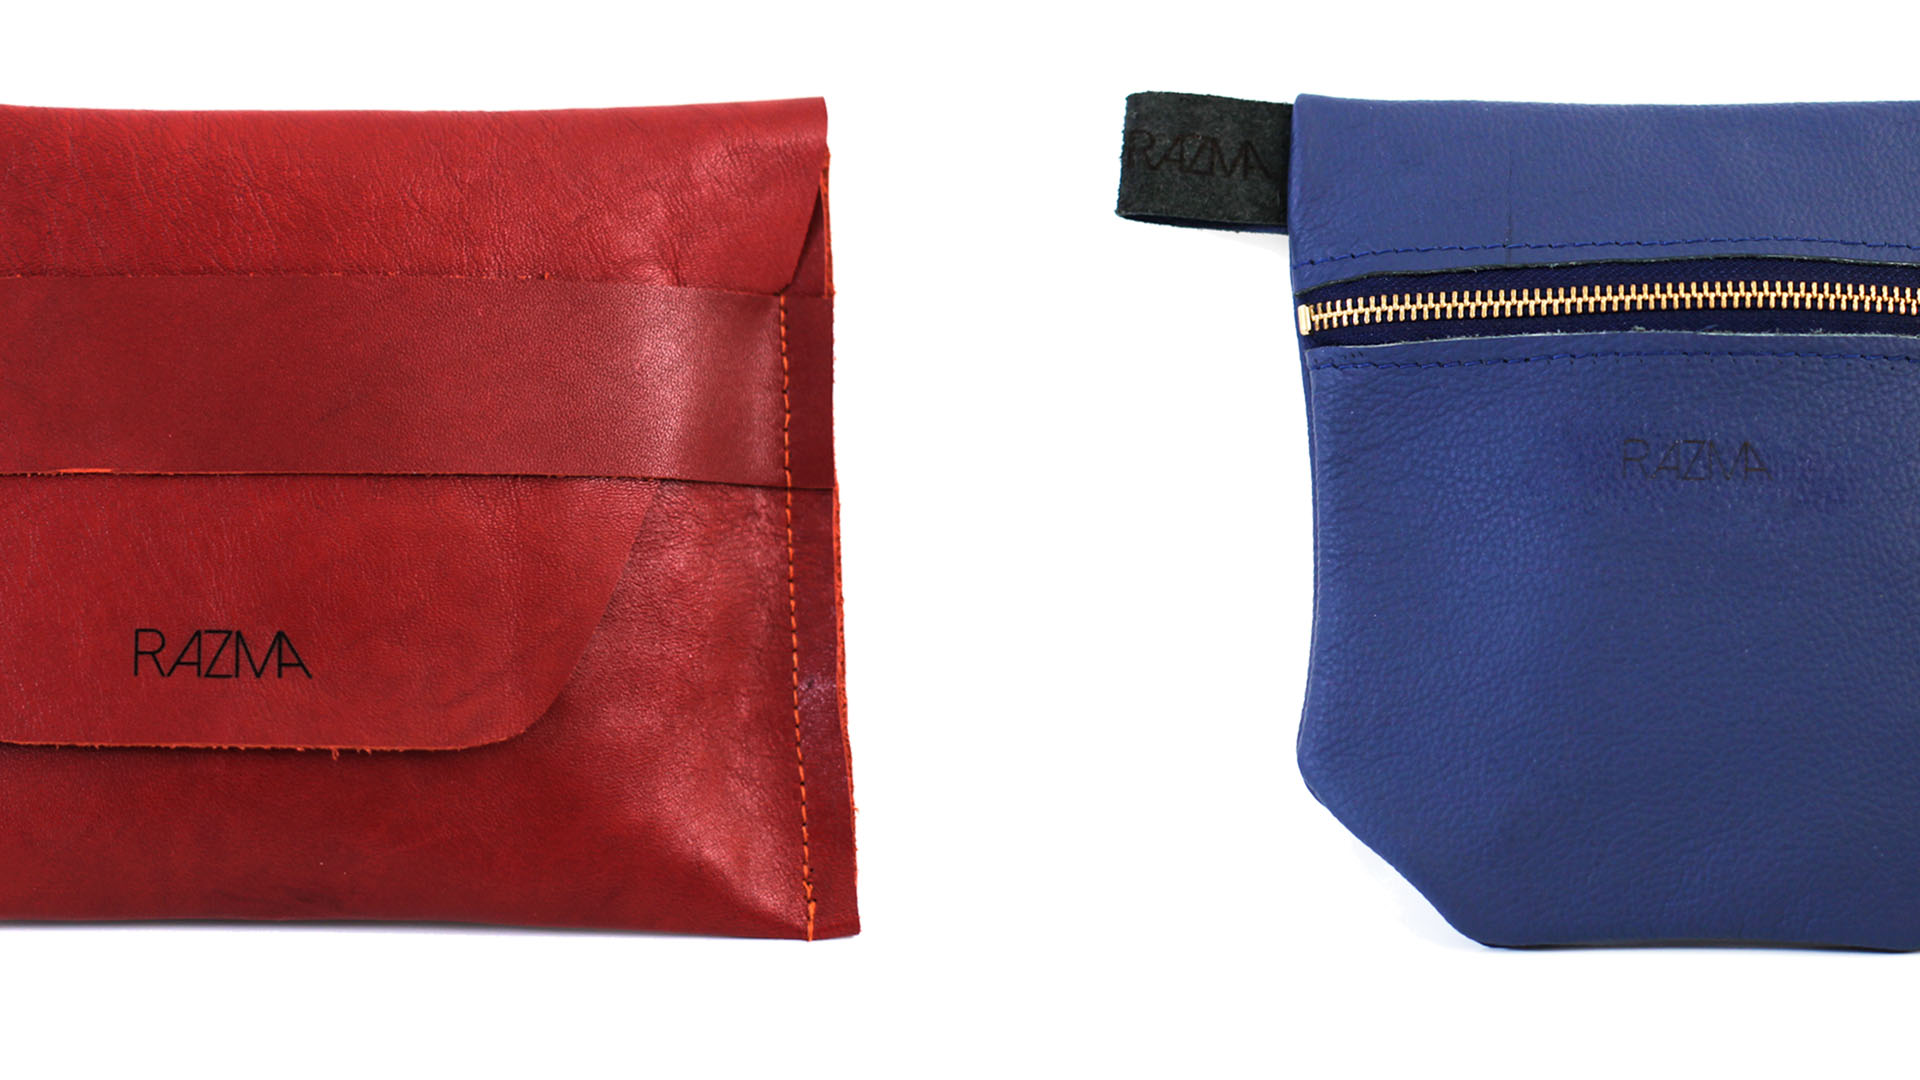 razma-blue-and-red2